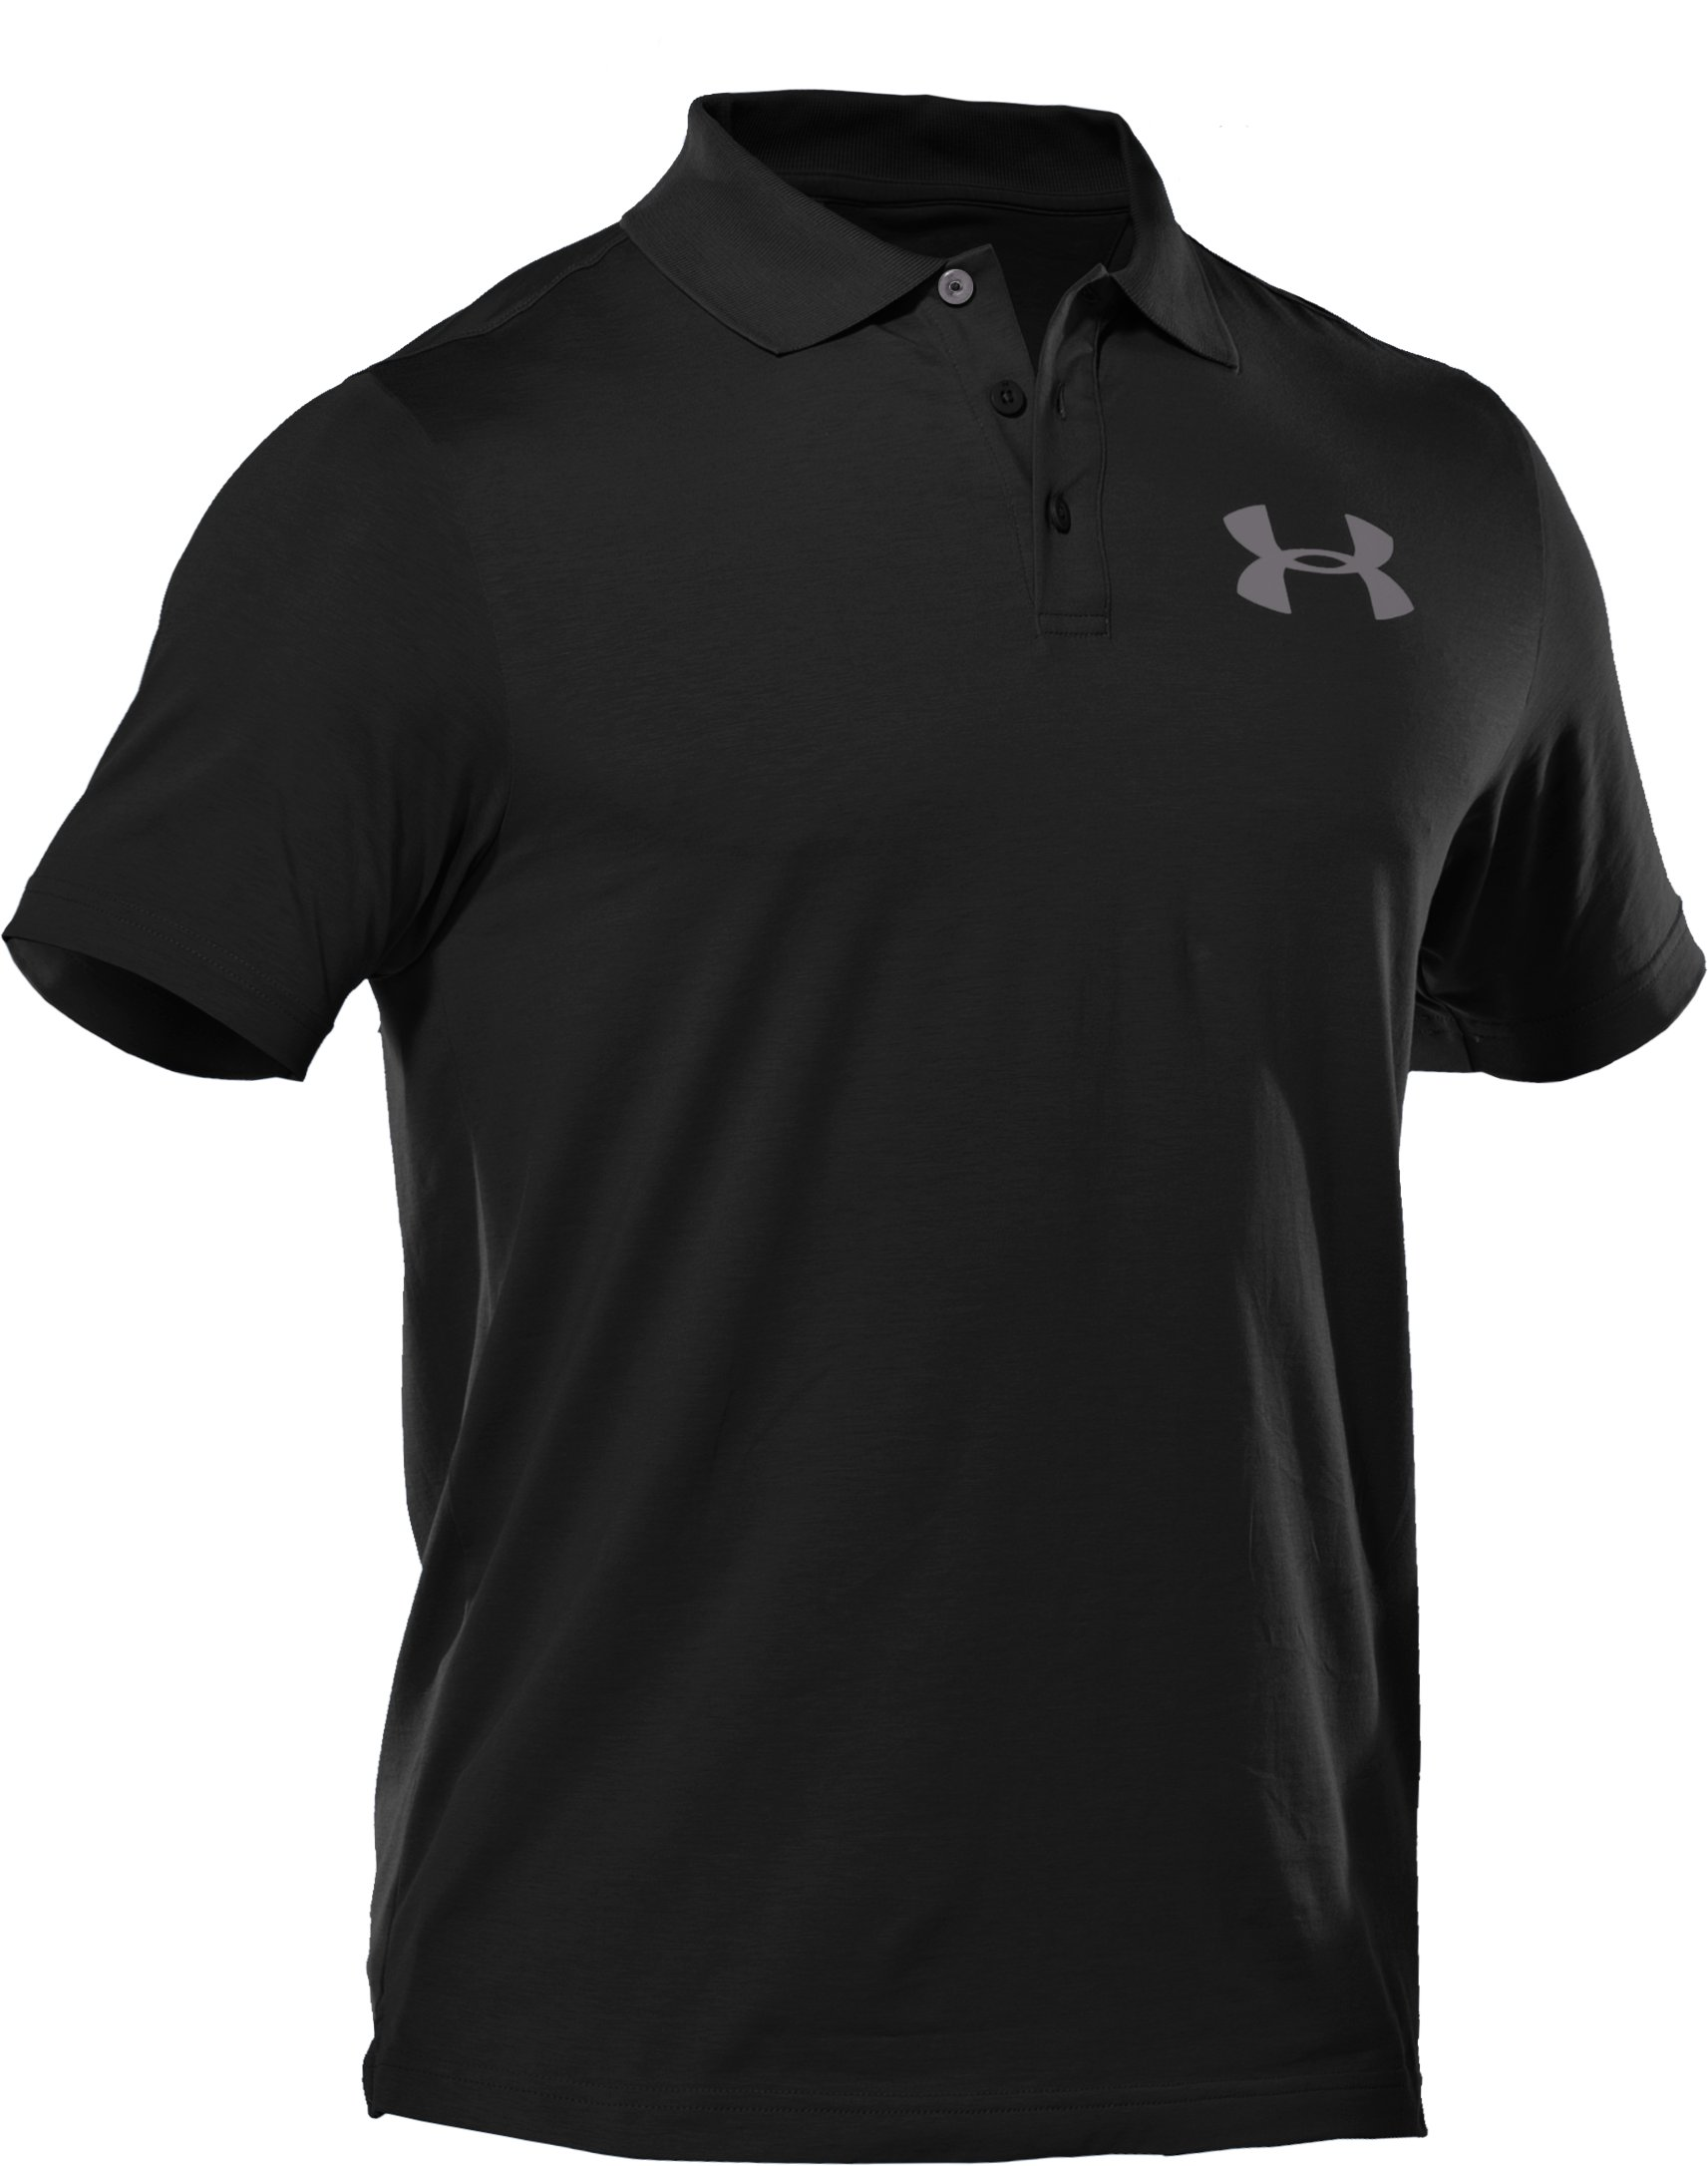 Men's Charged Cotton® Jersey Solid Polo, Black